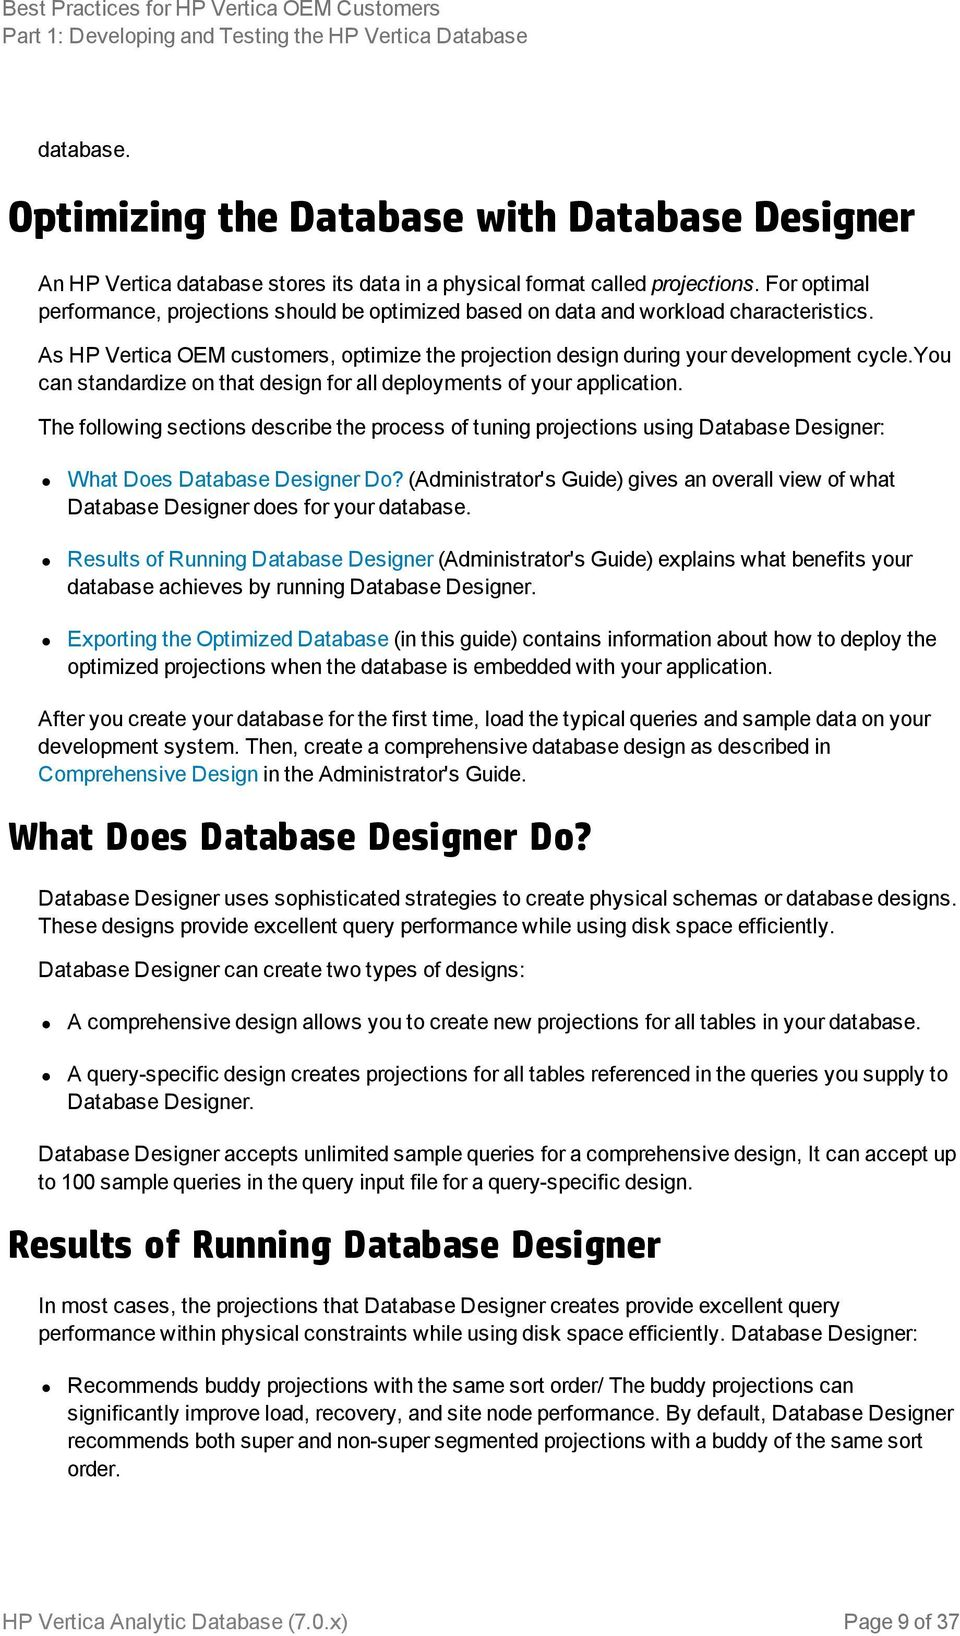 you can standardize on that design for all deployments of your application. The following sections describe the process of tuning projections using Database Designer: What Does Database Designer Do?